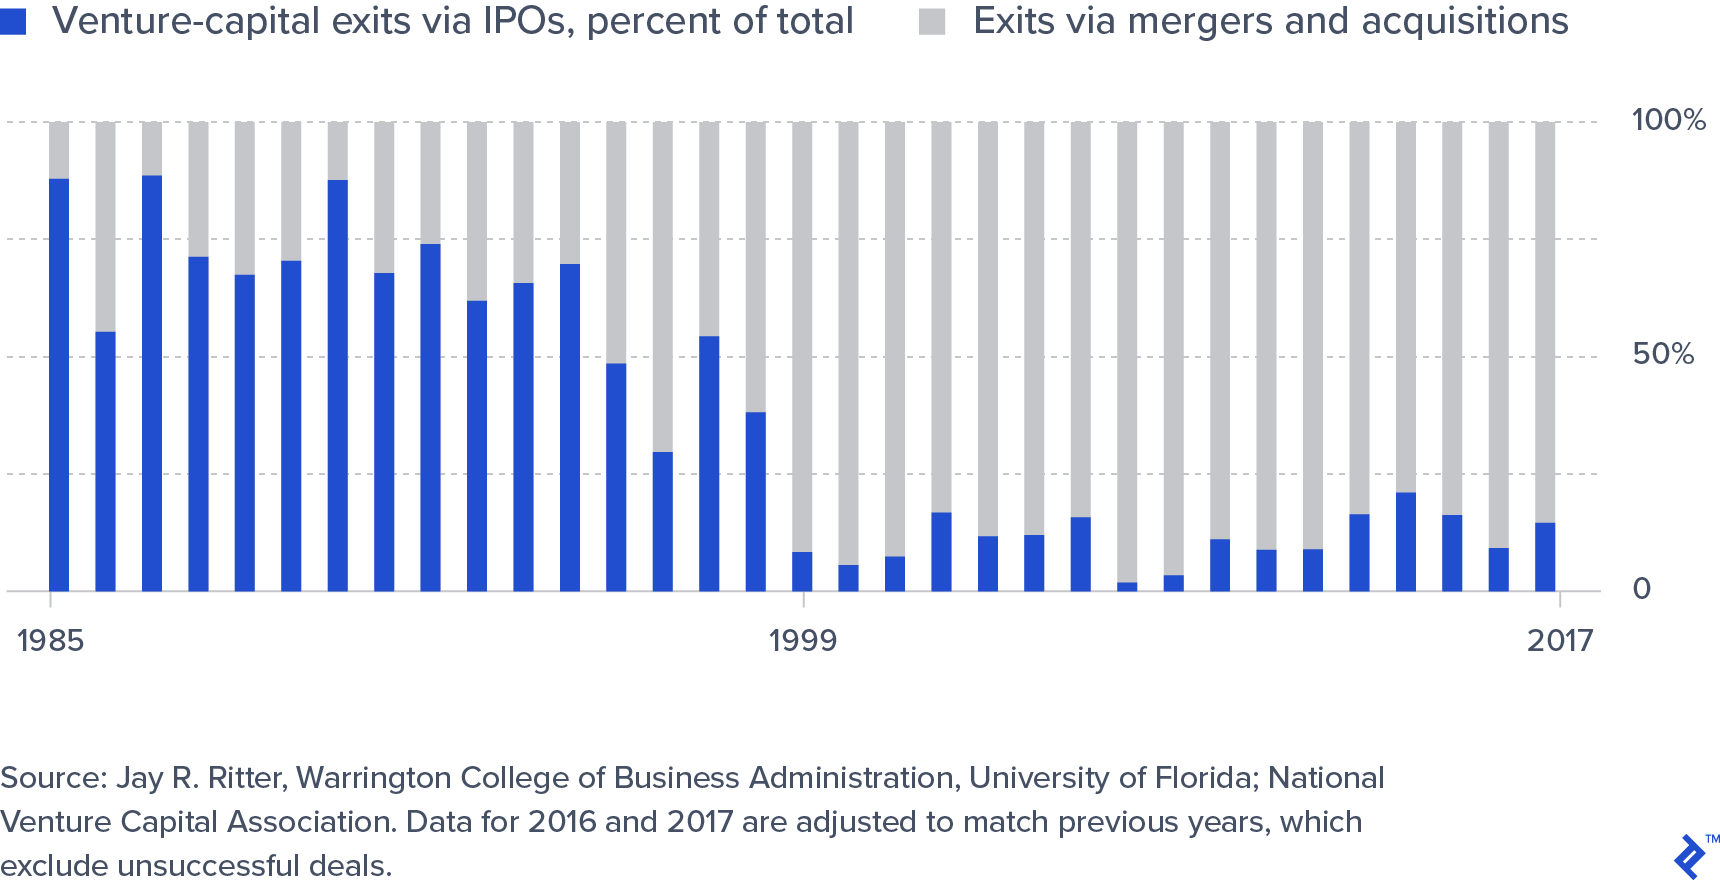 Venture Capital Exits through IPO or Merger